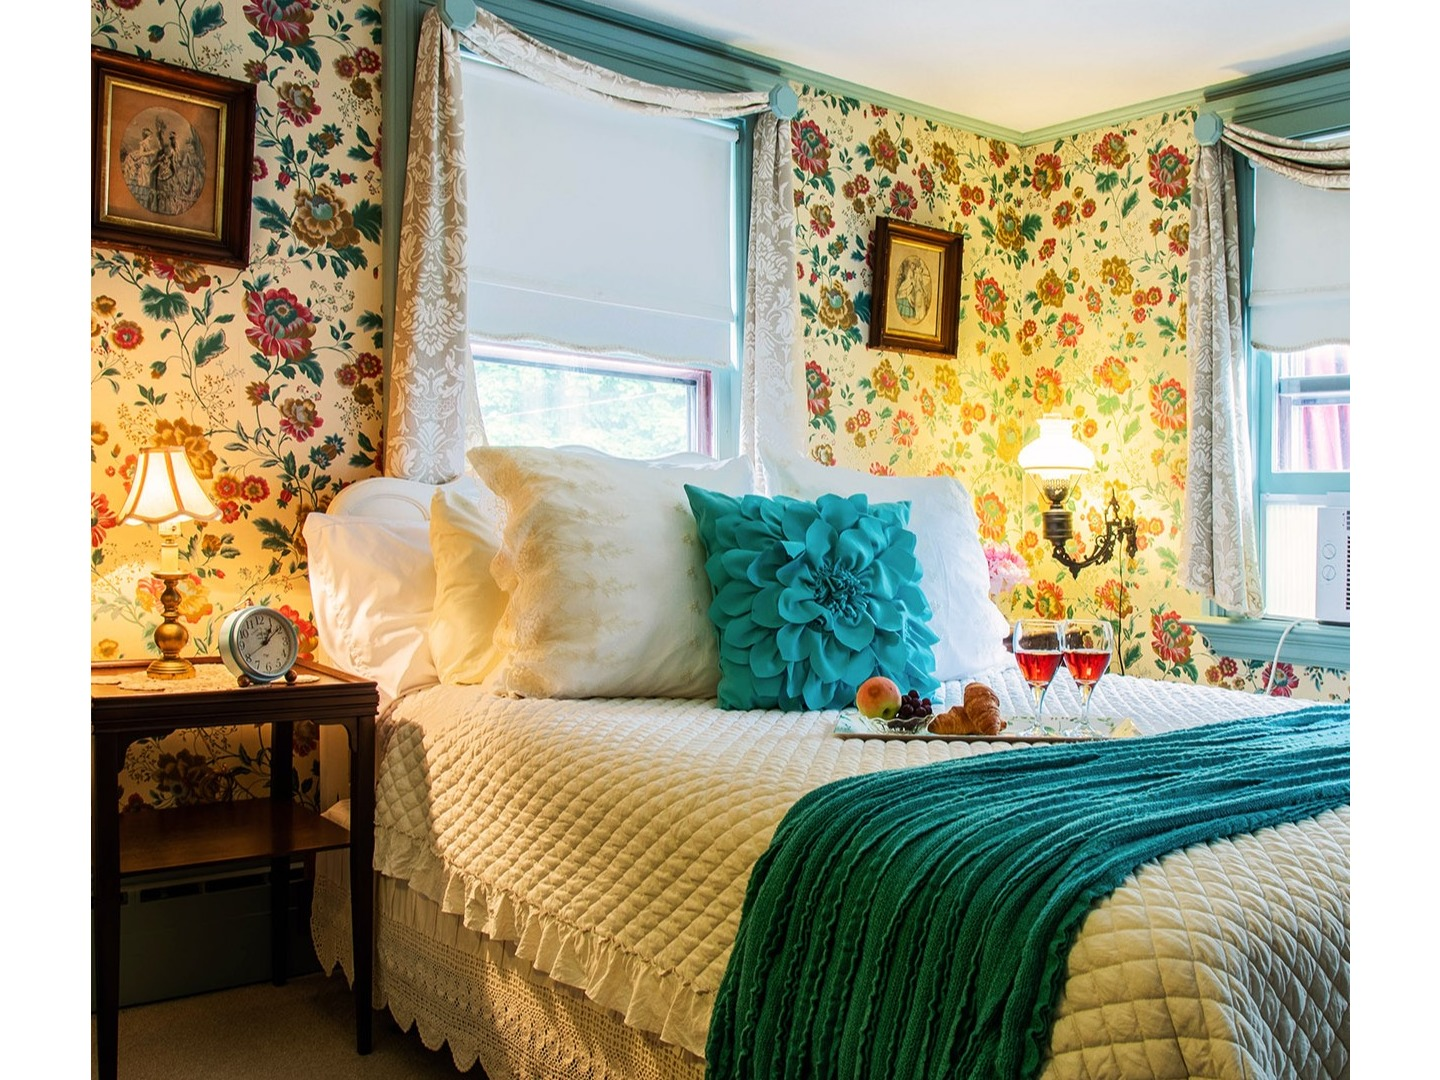 A bedroom with a bed in a room at Westbrook Inn Bed & Breakfast.